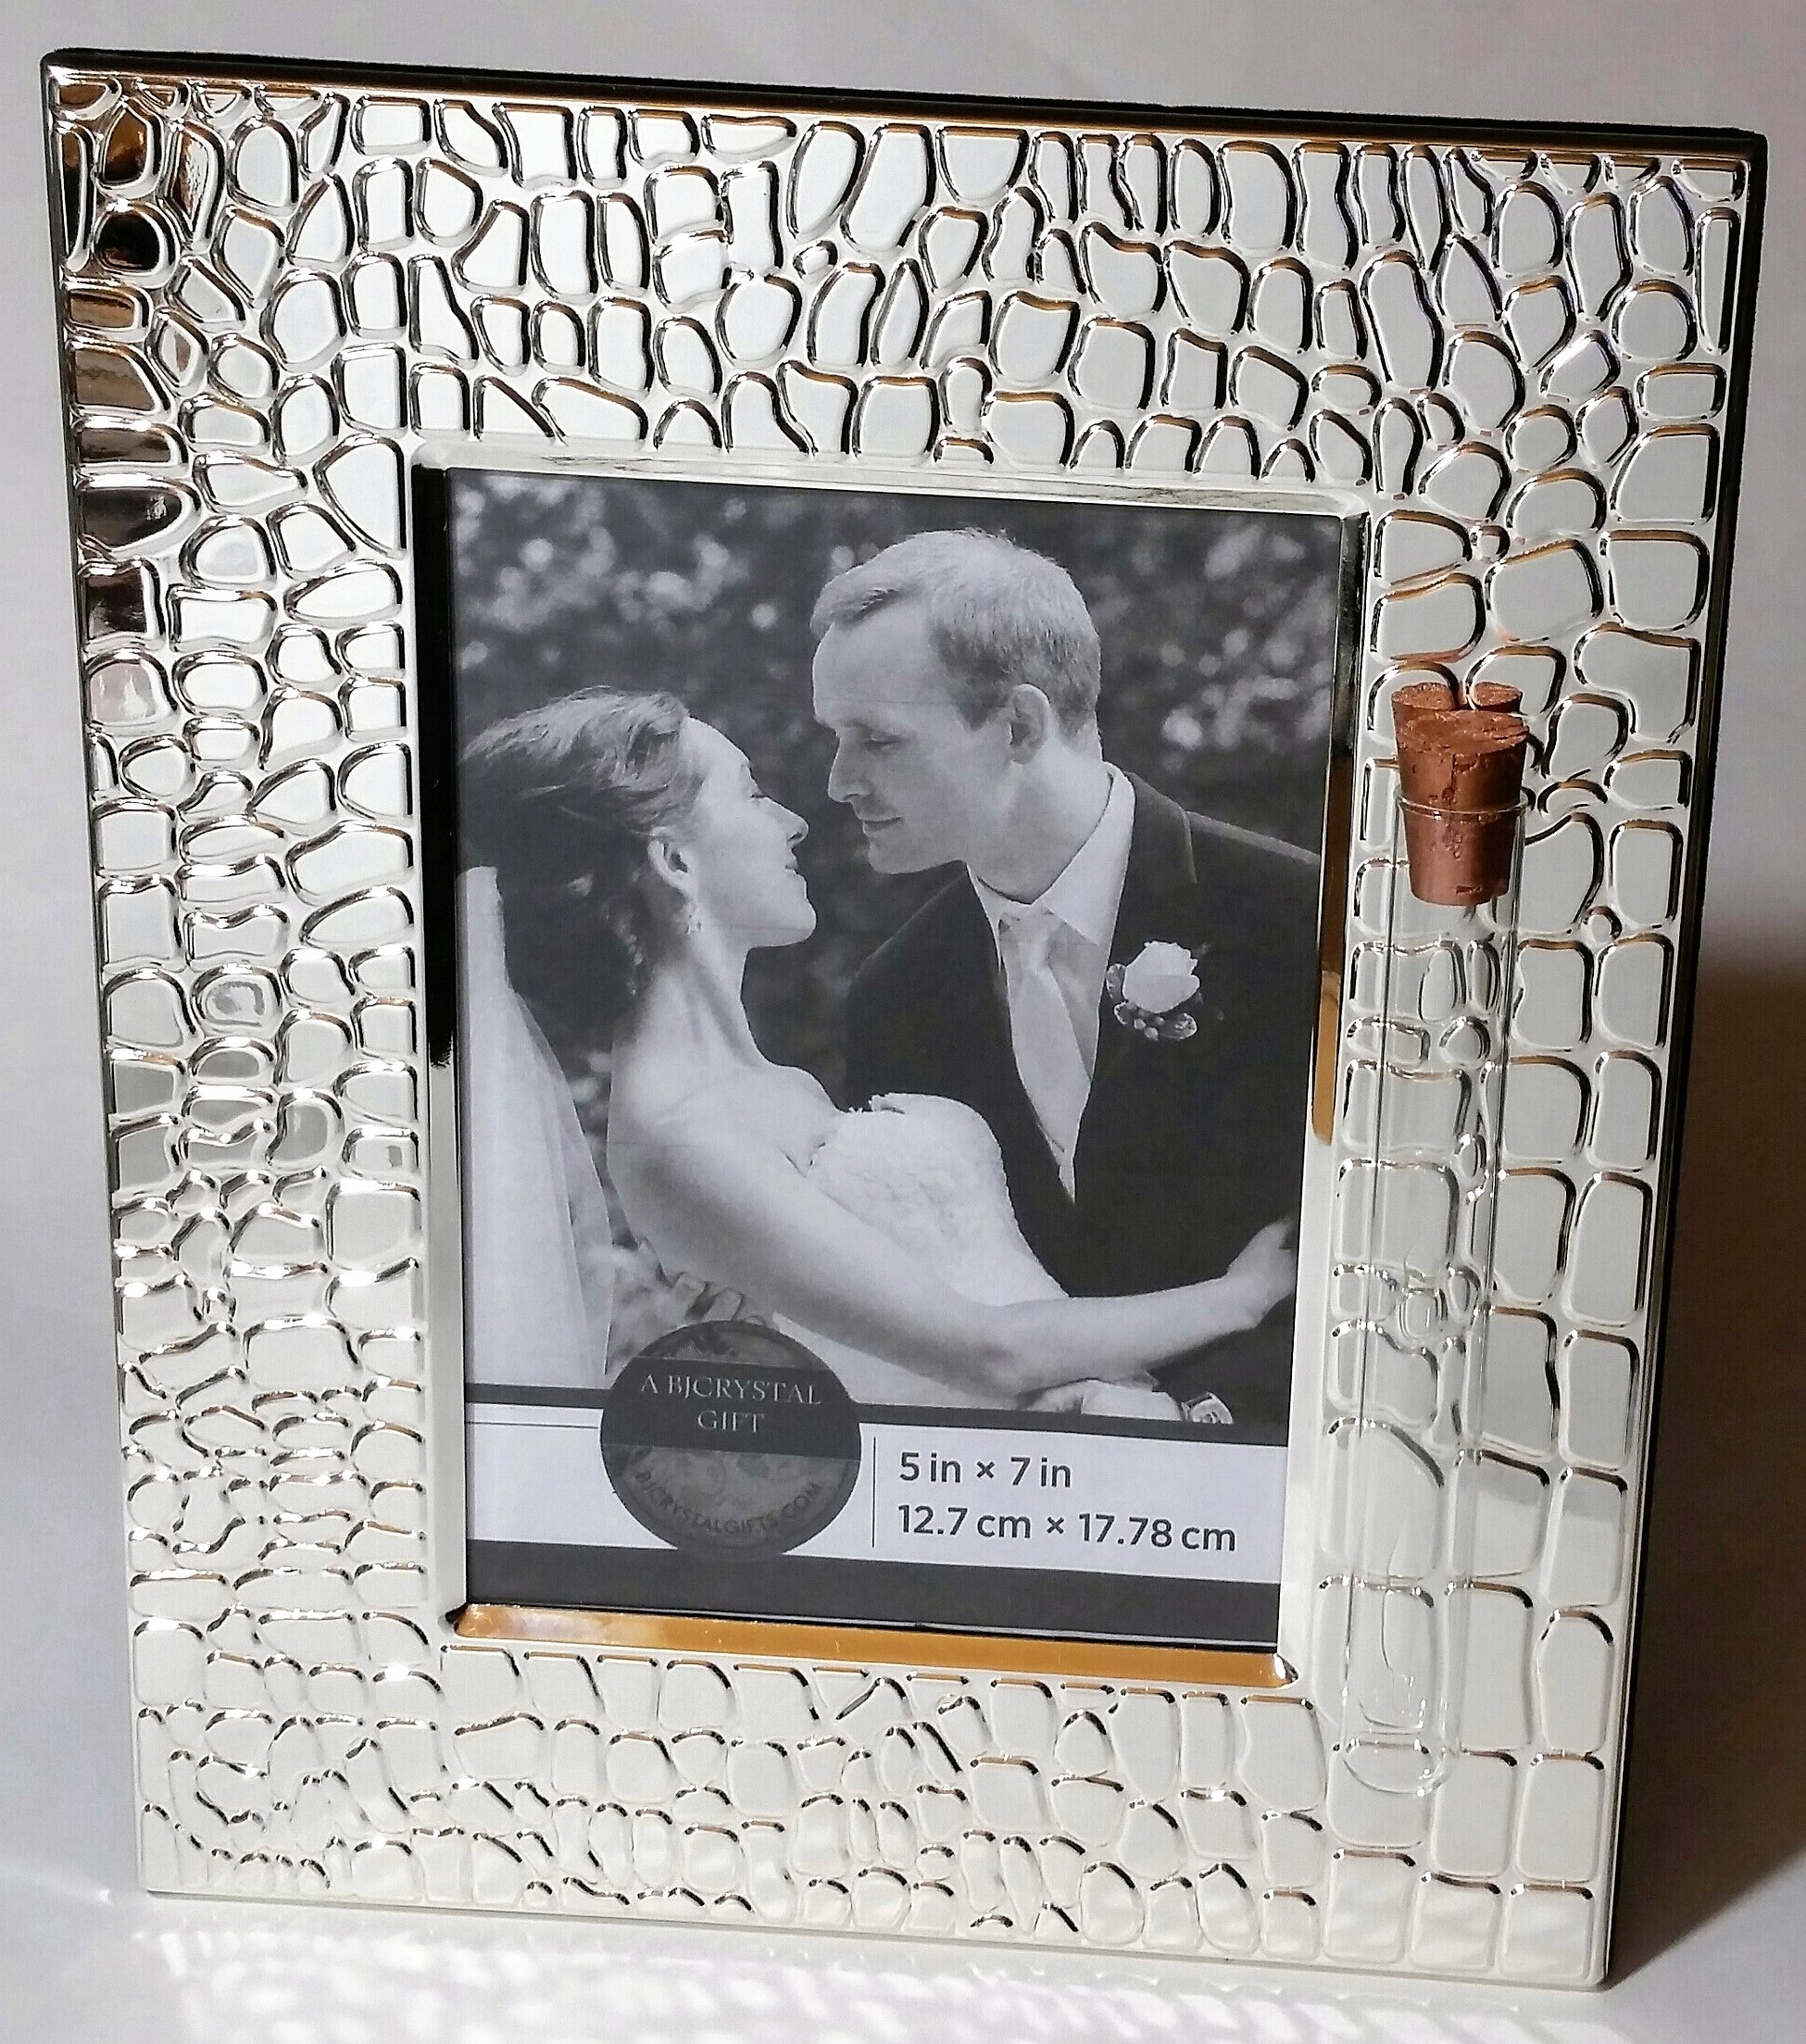 Jewish Wedding Picture Frame - Jewish Engagement Gift - 5x7 picture - Holds Shards From Chuppah